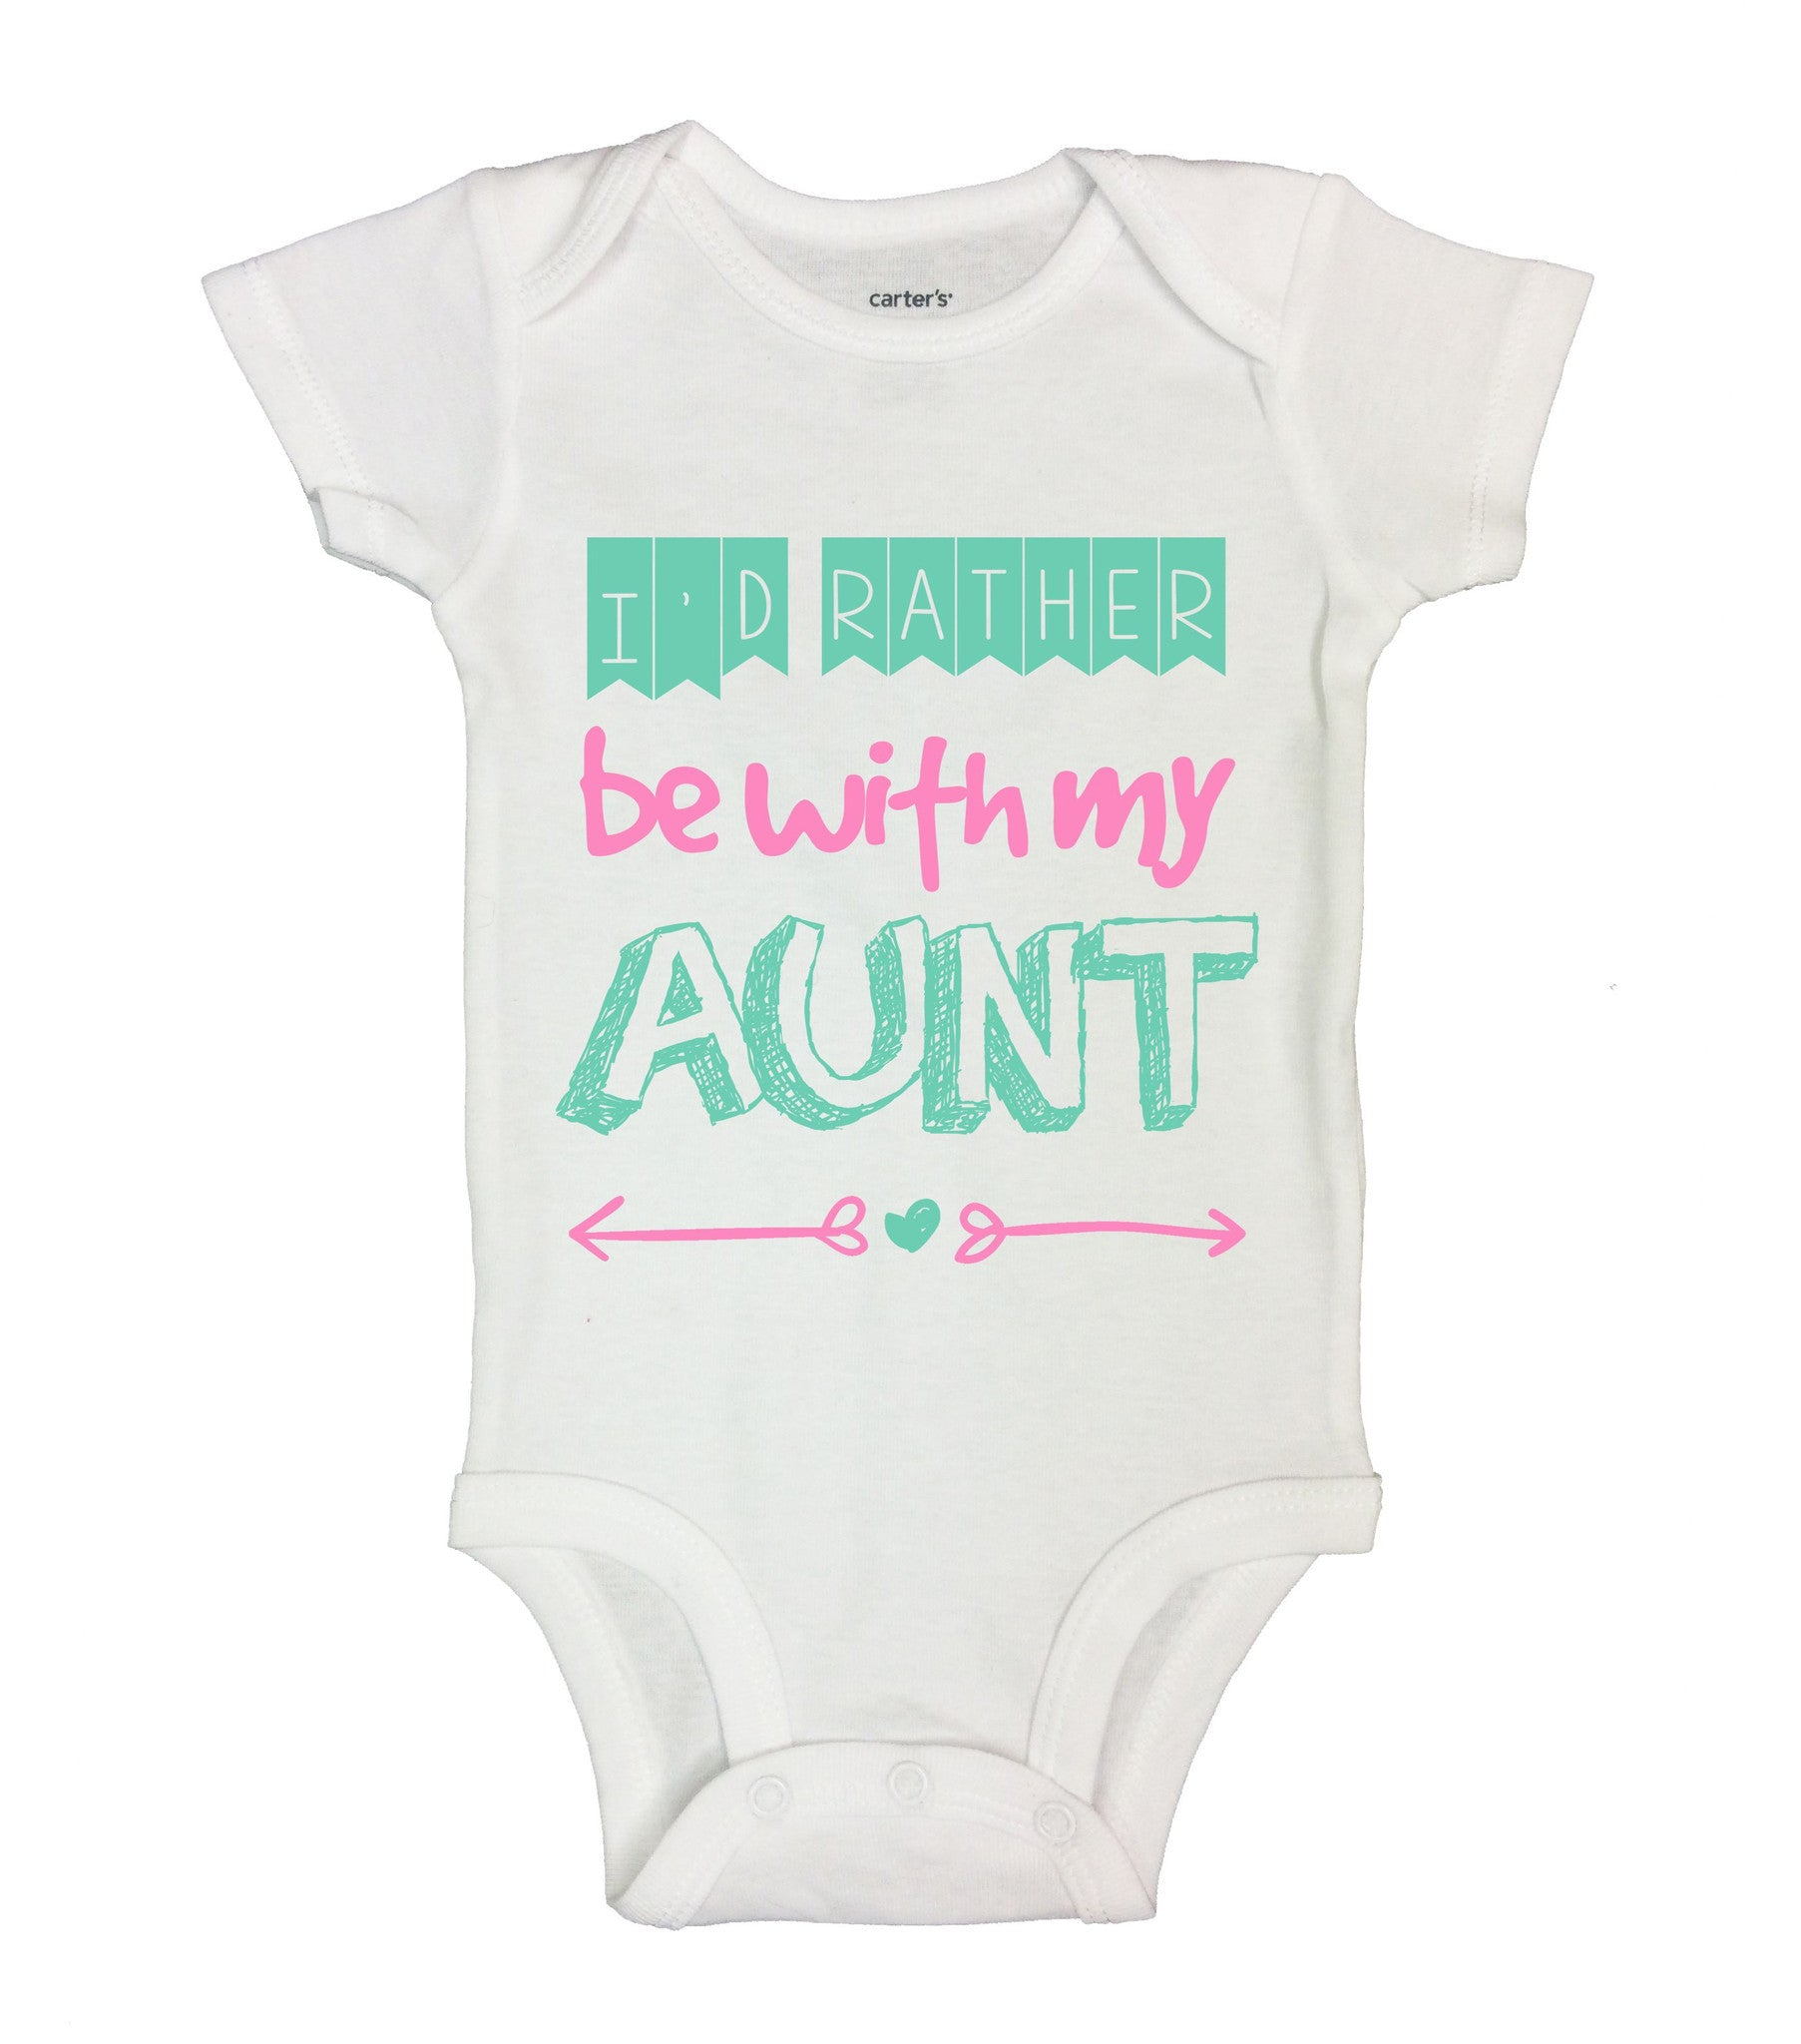 I'd Rather Be With My Aunt Funny Kids Onesie - B121 - Funny Shirts Tank Tops Burnouts and Triblends  - 2